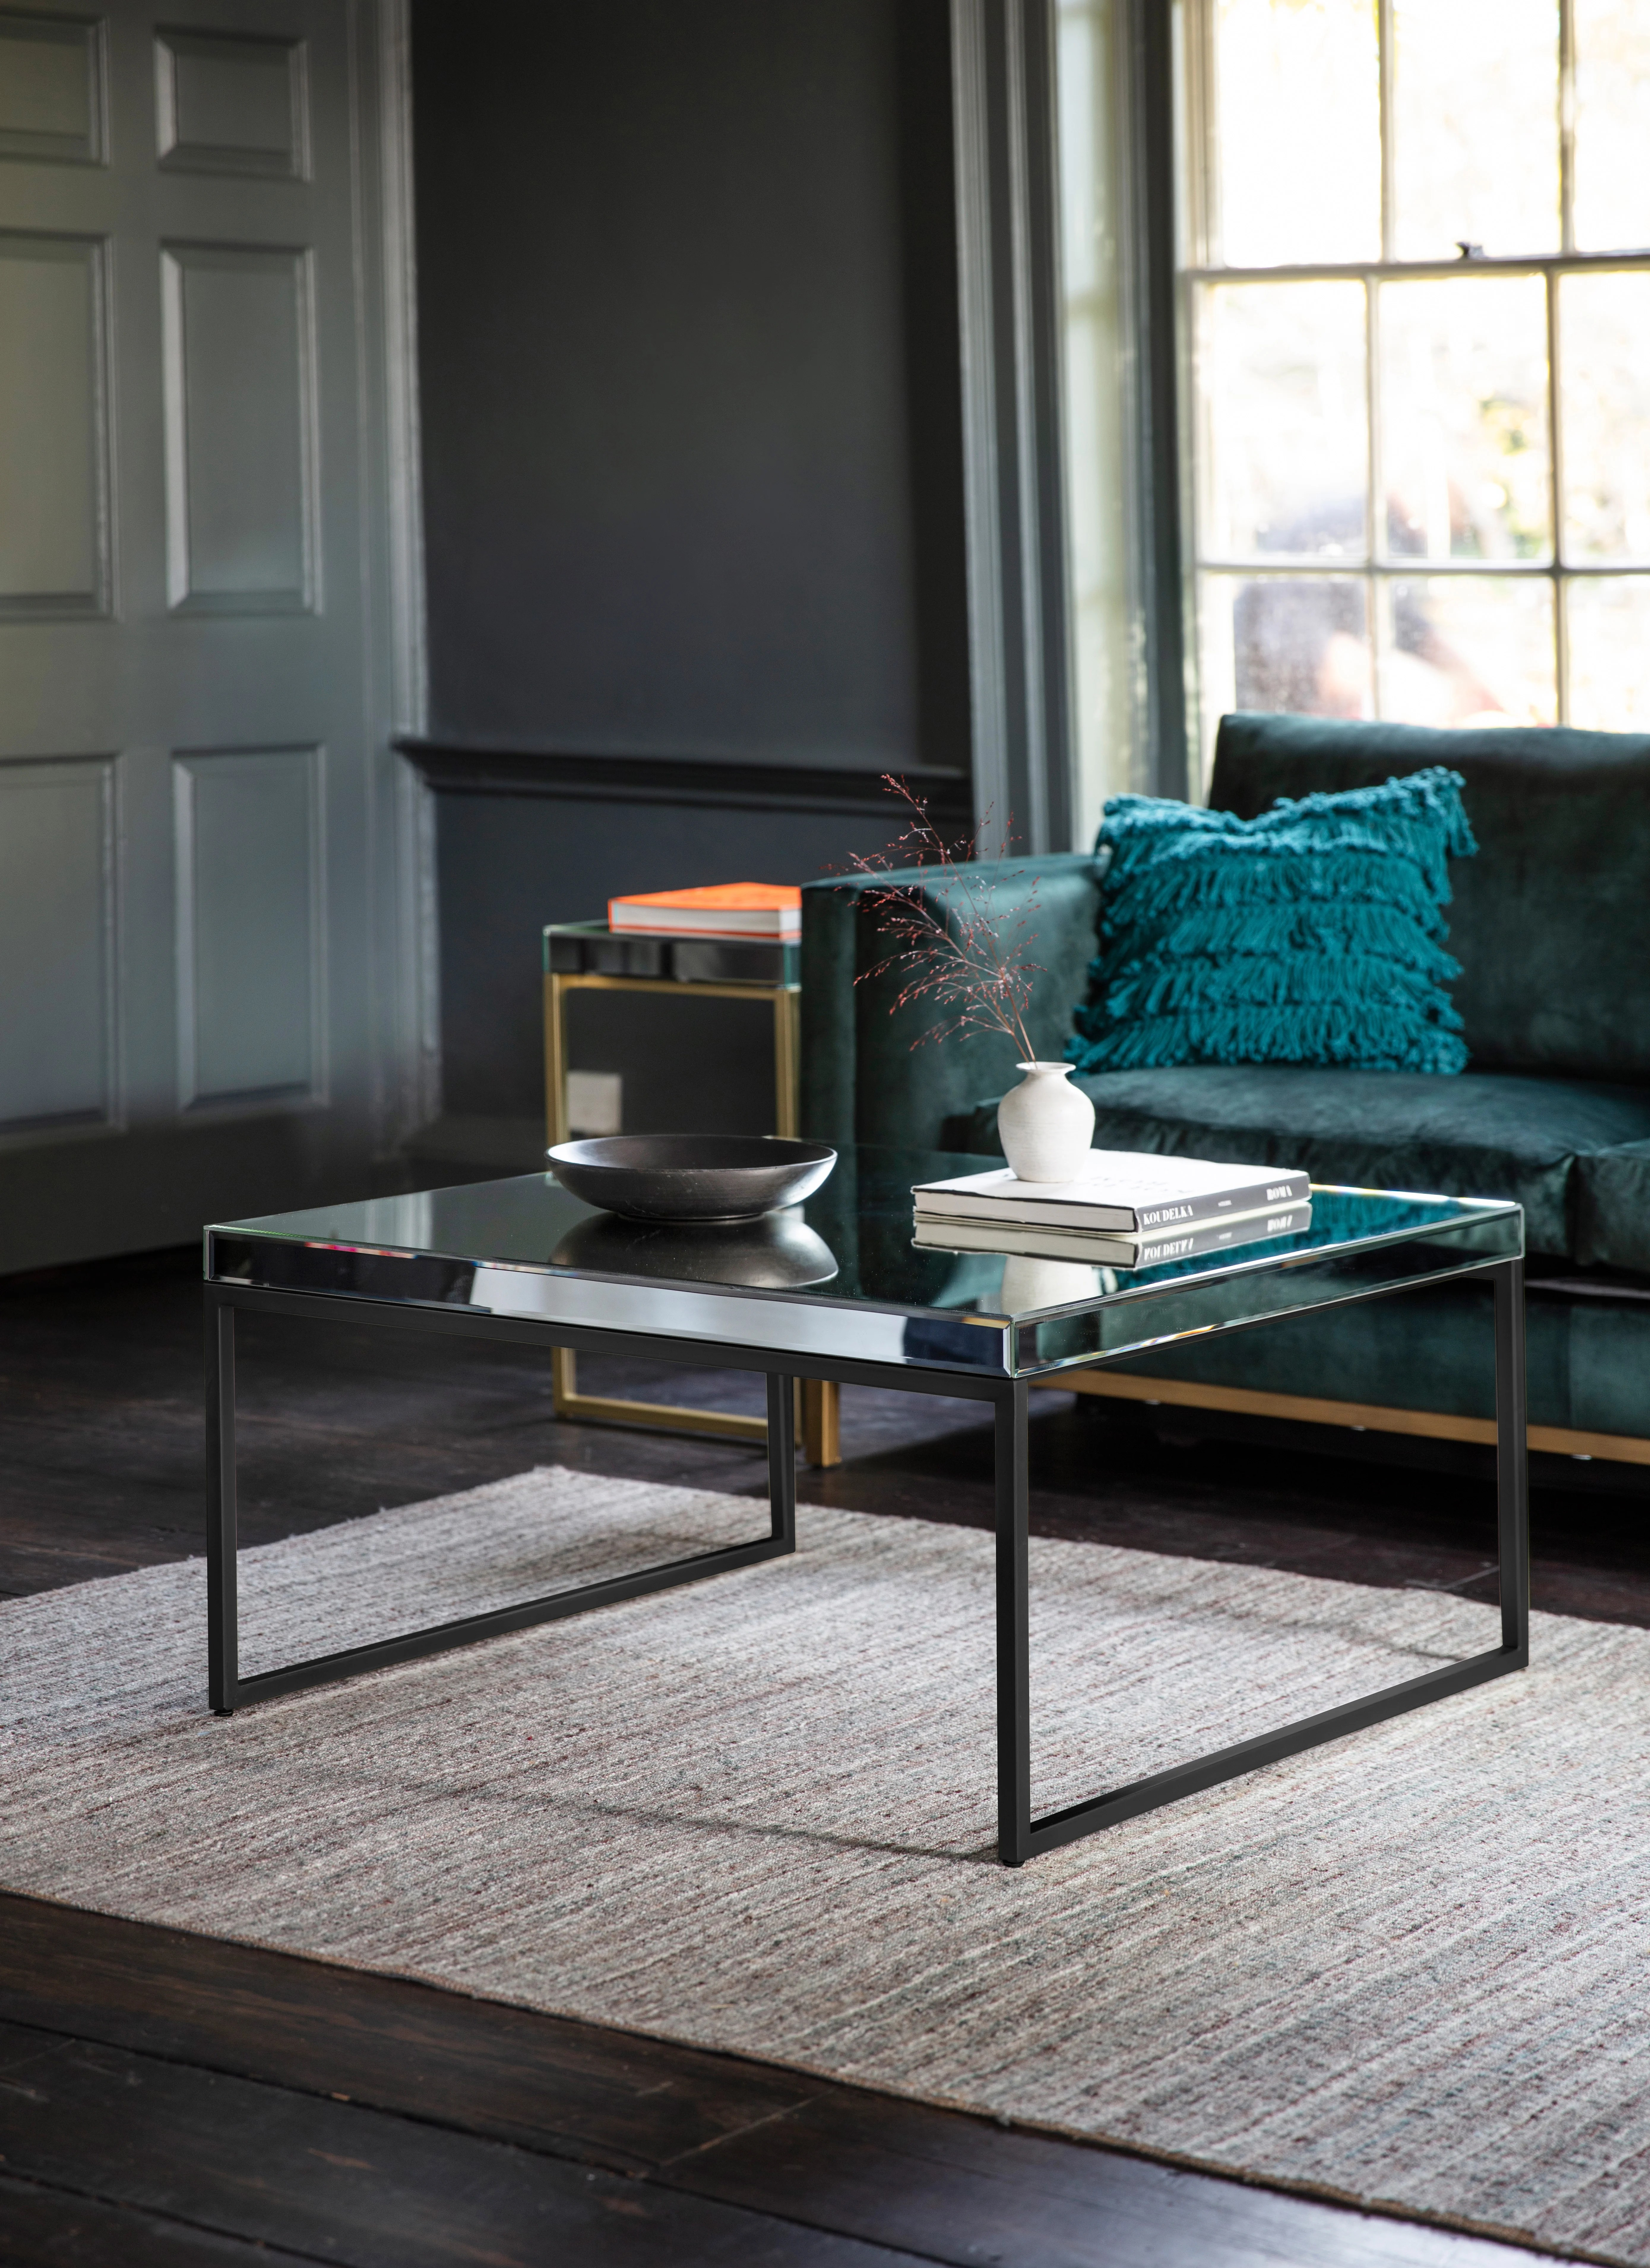 Willa Arlo Interiors Couchtisch Ayalisse Wayfair De